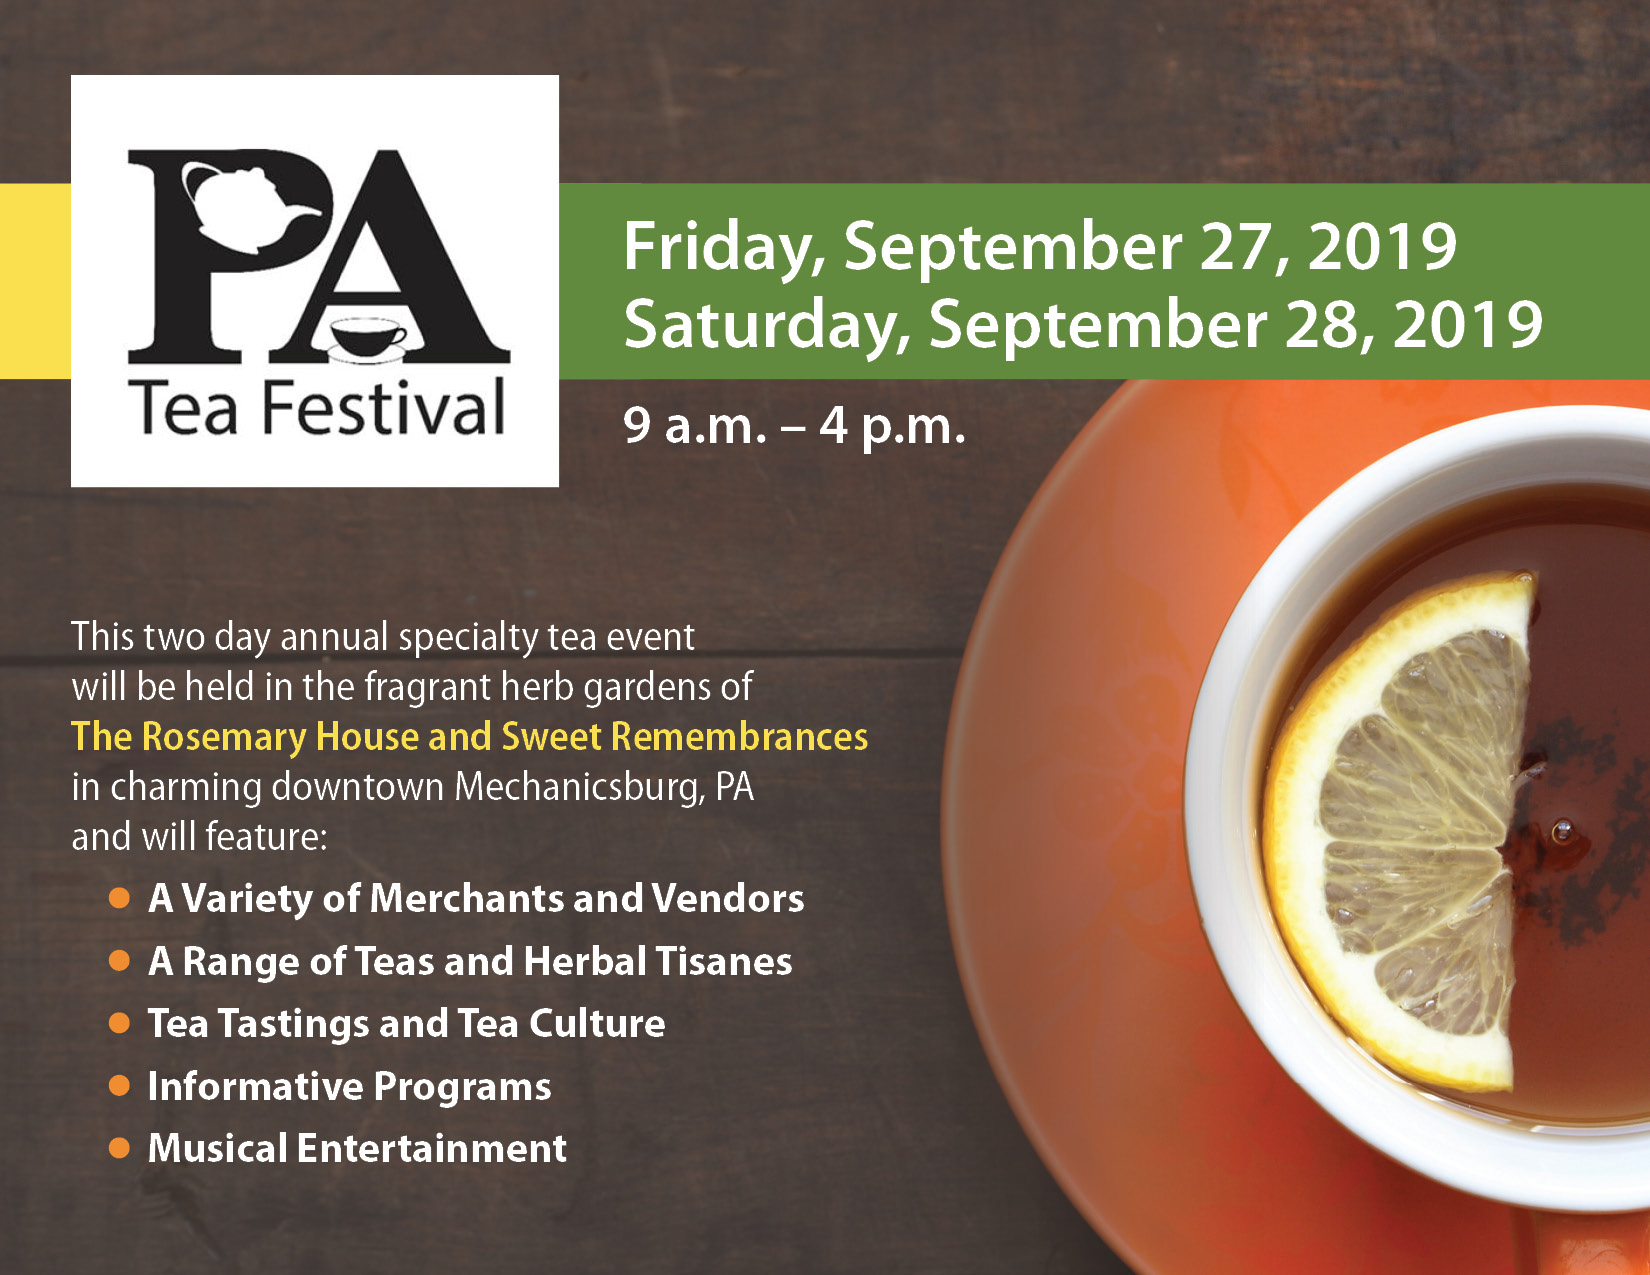 graphic of teacup and tea festival